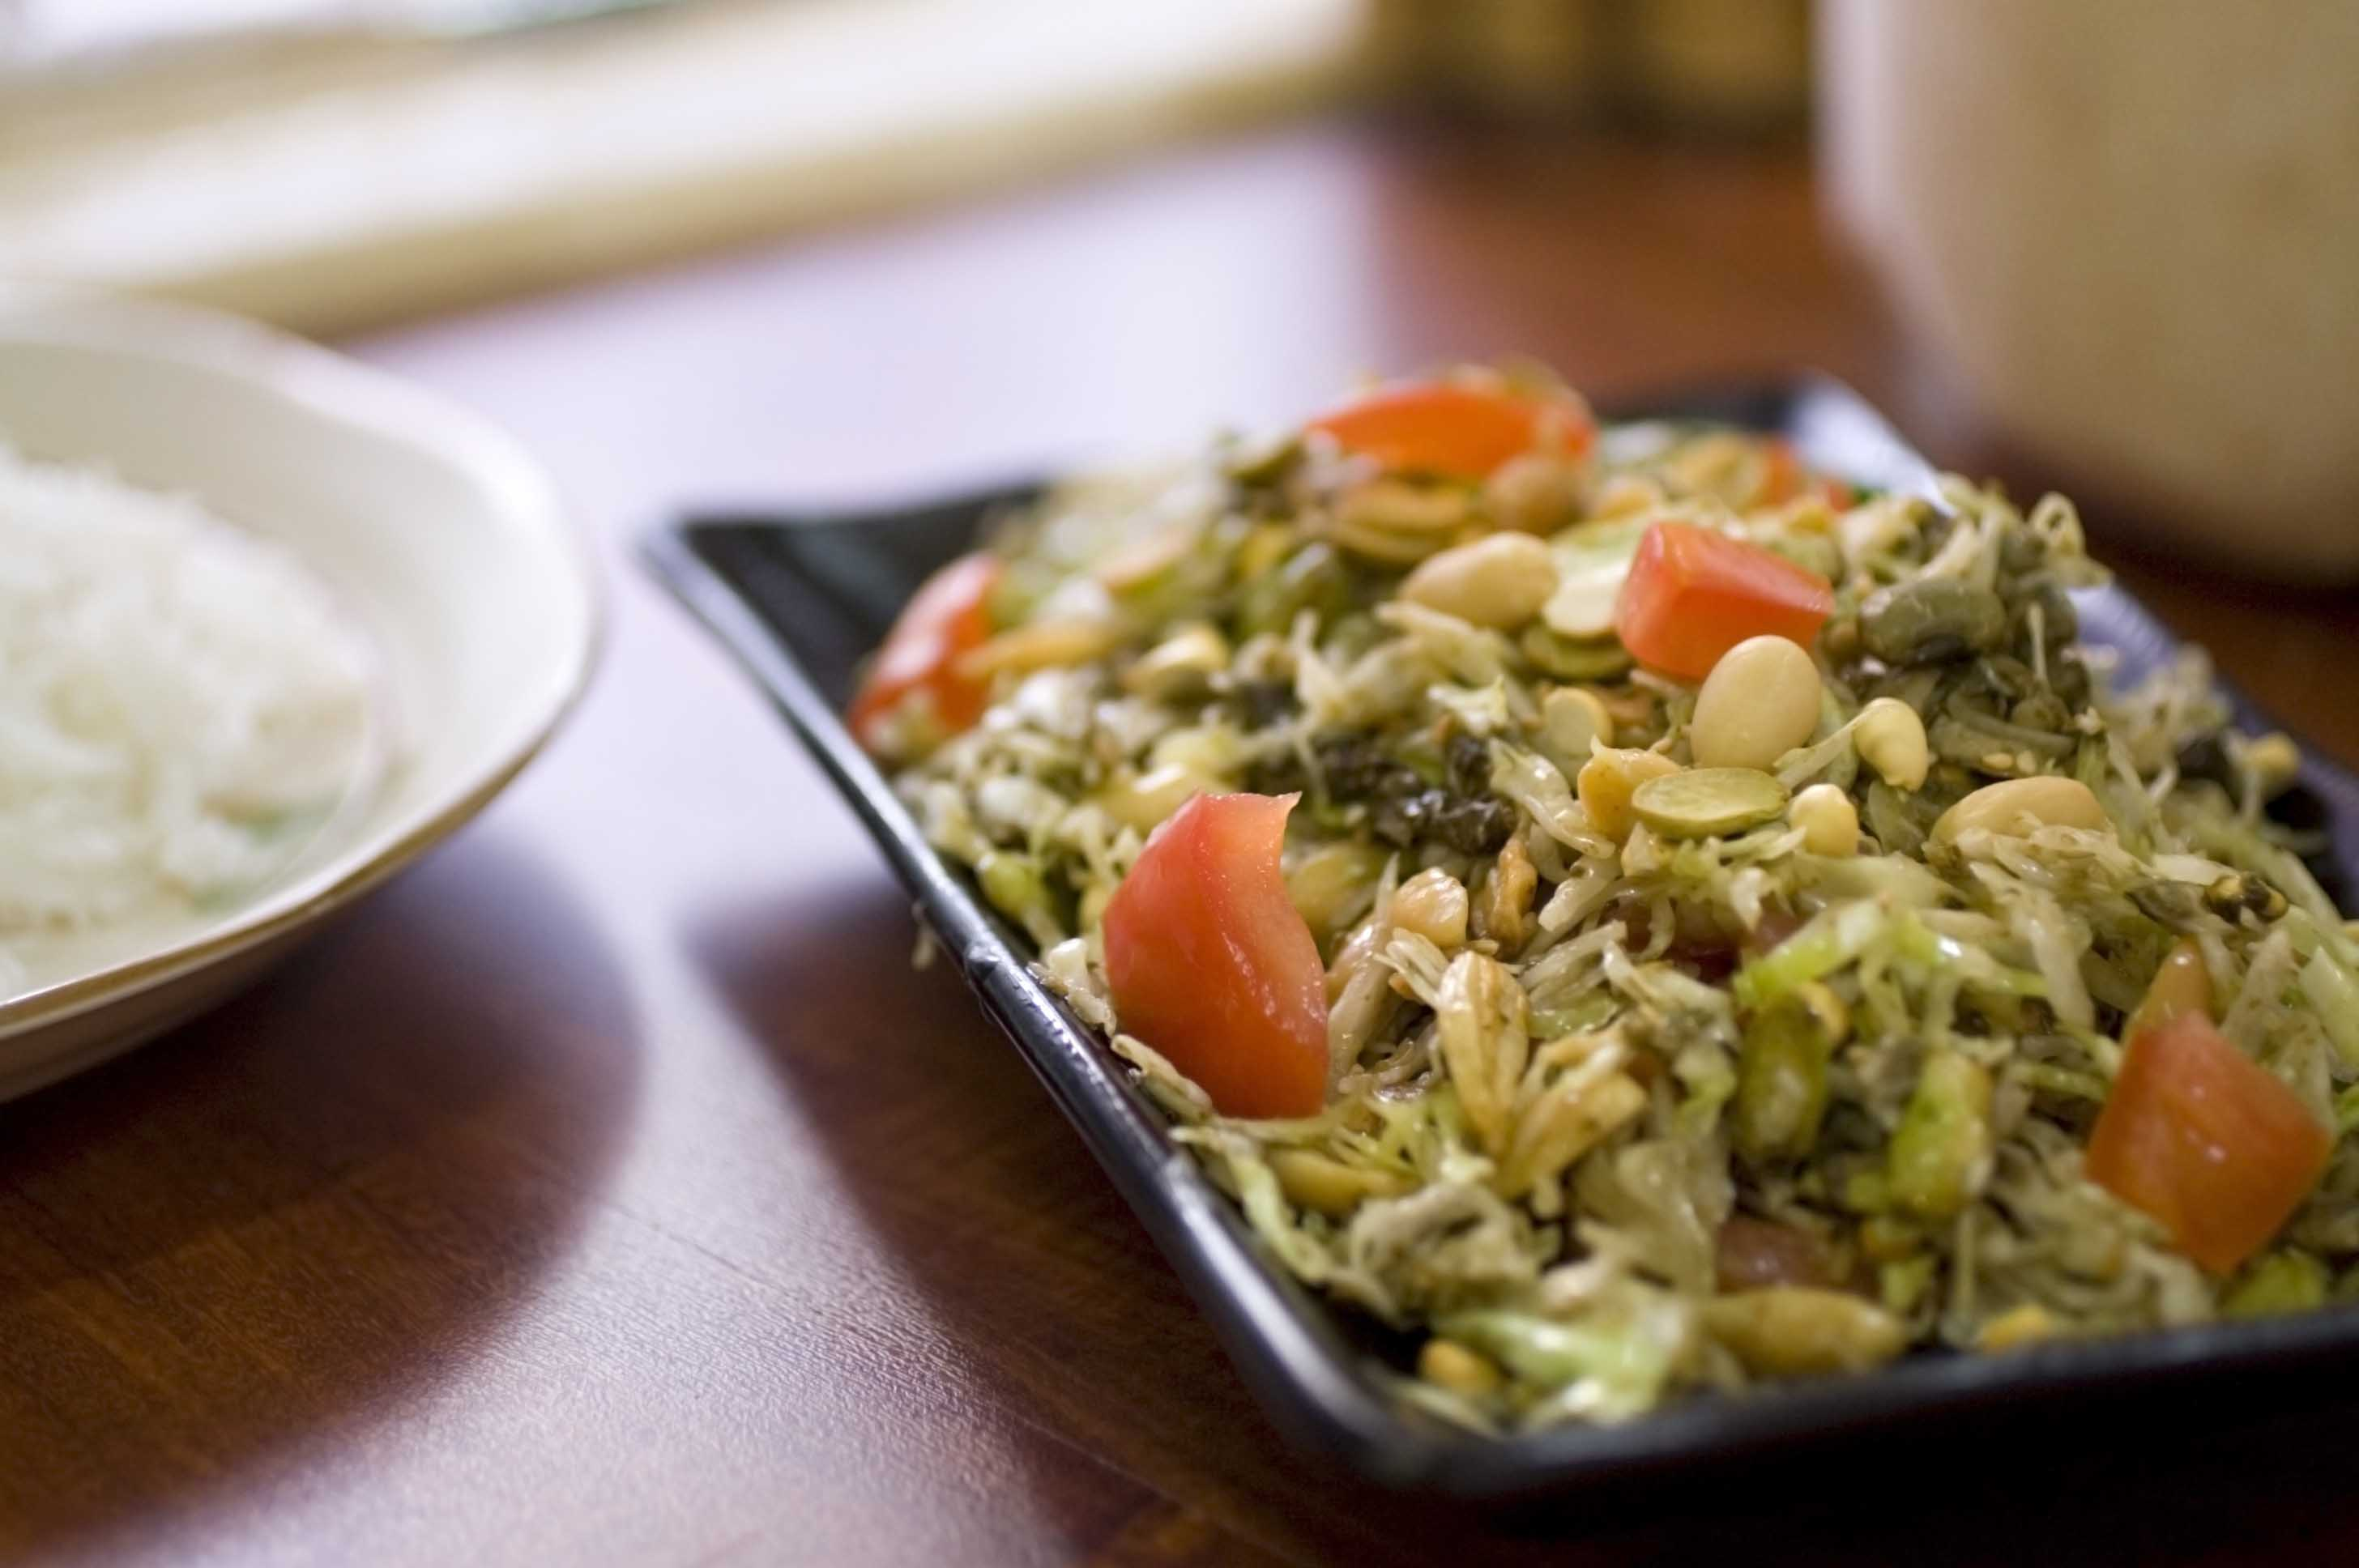 The Burmese fermented tea leaf salad is a local speciality.